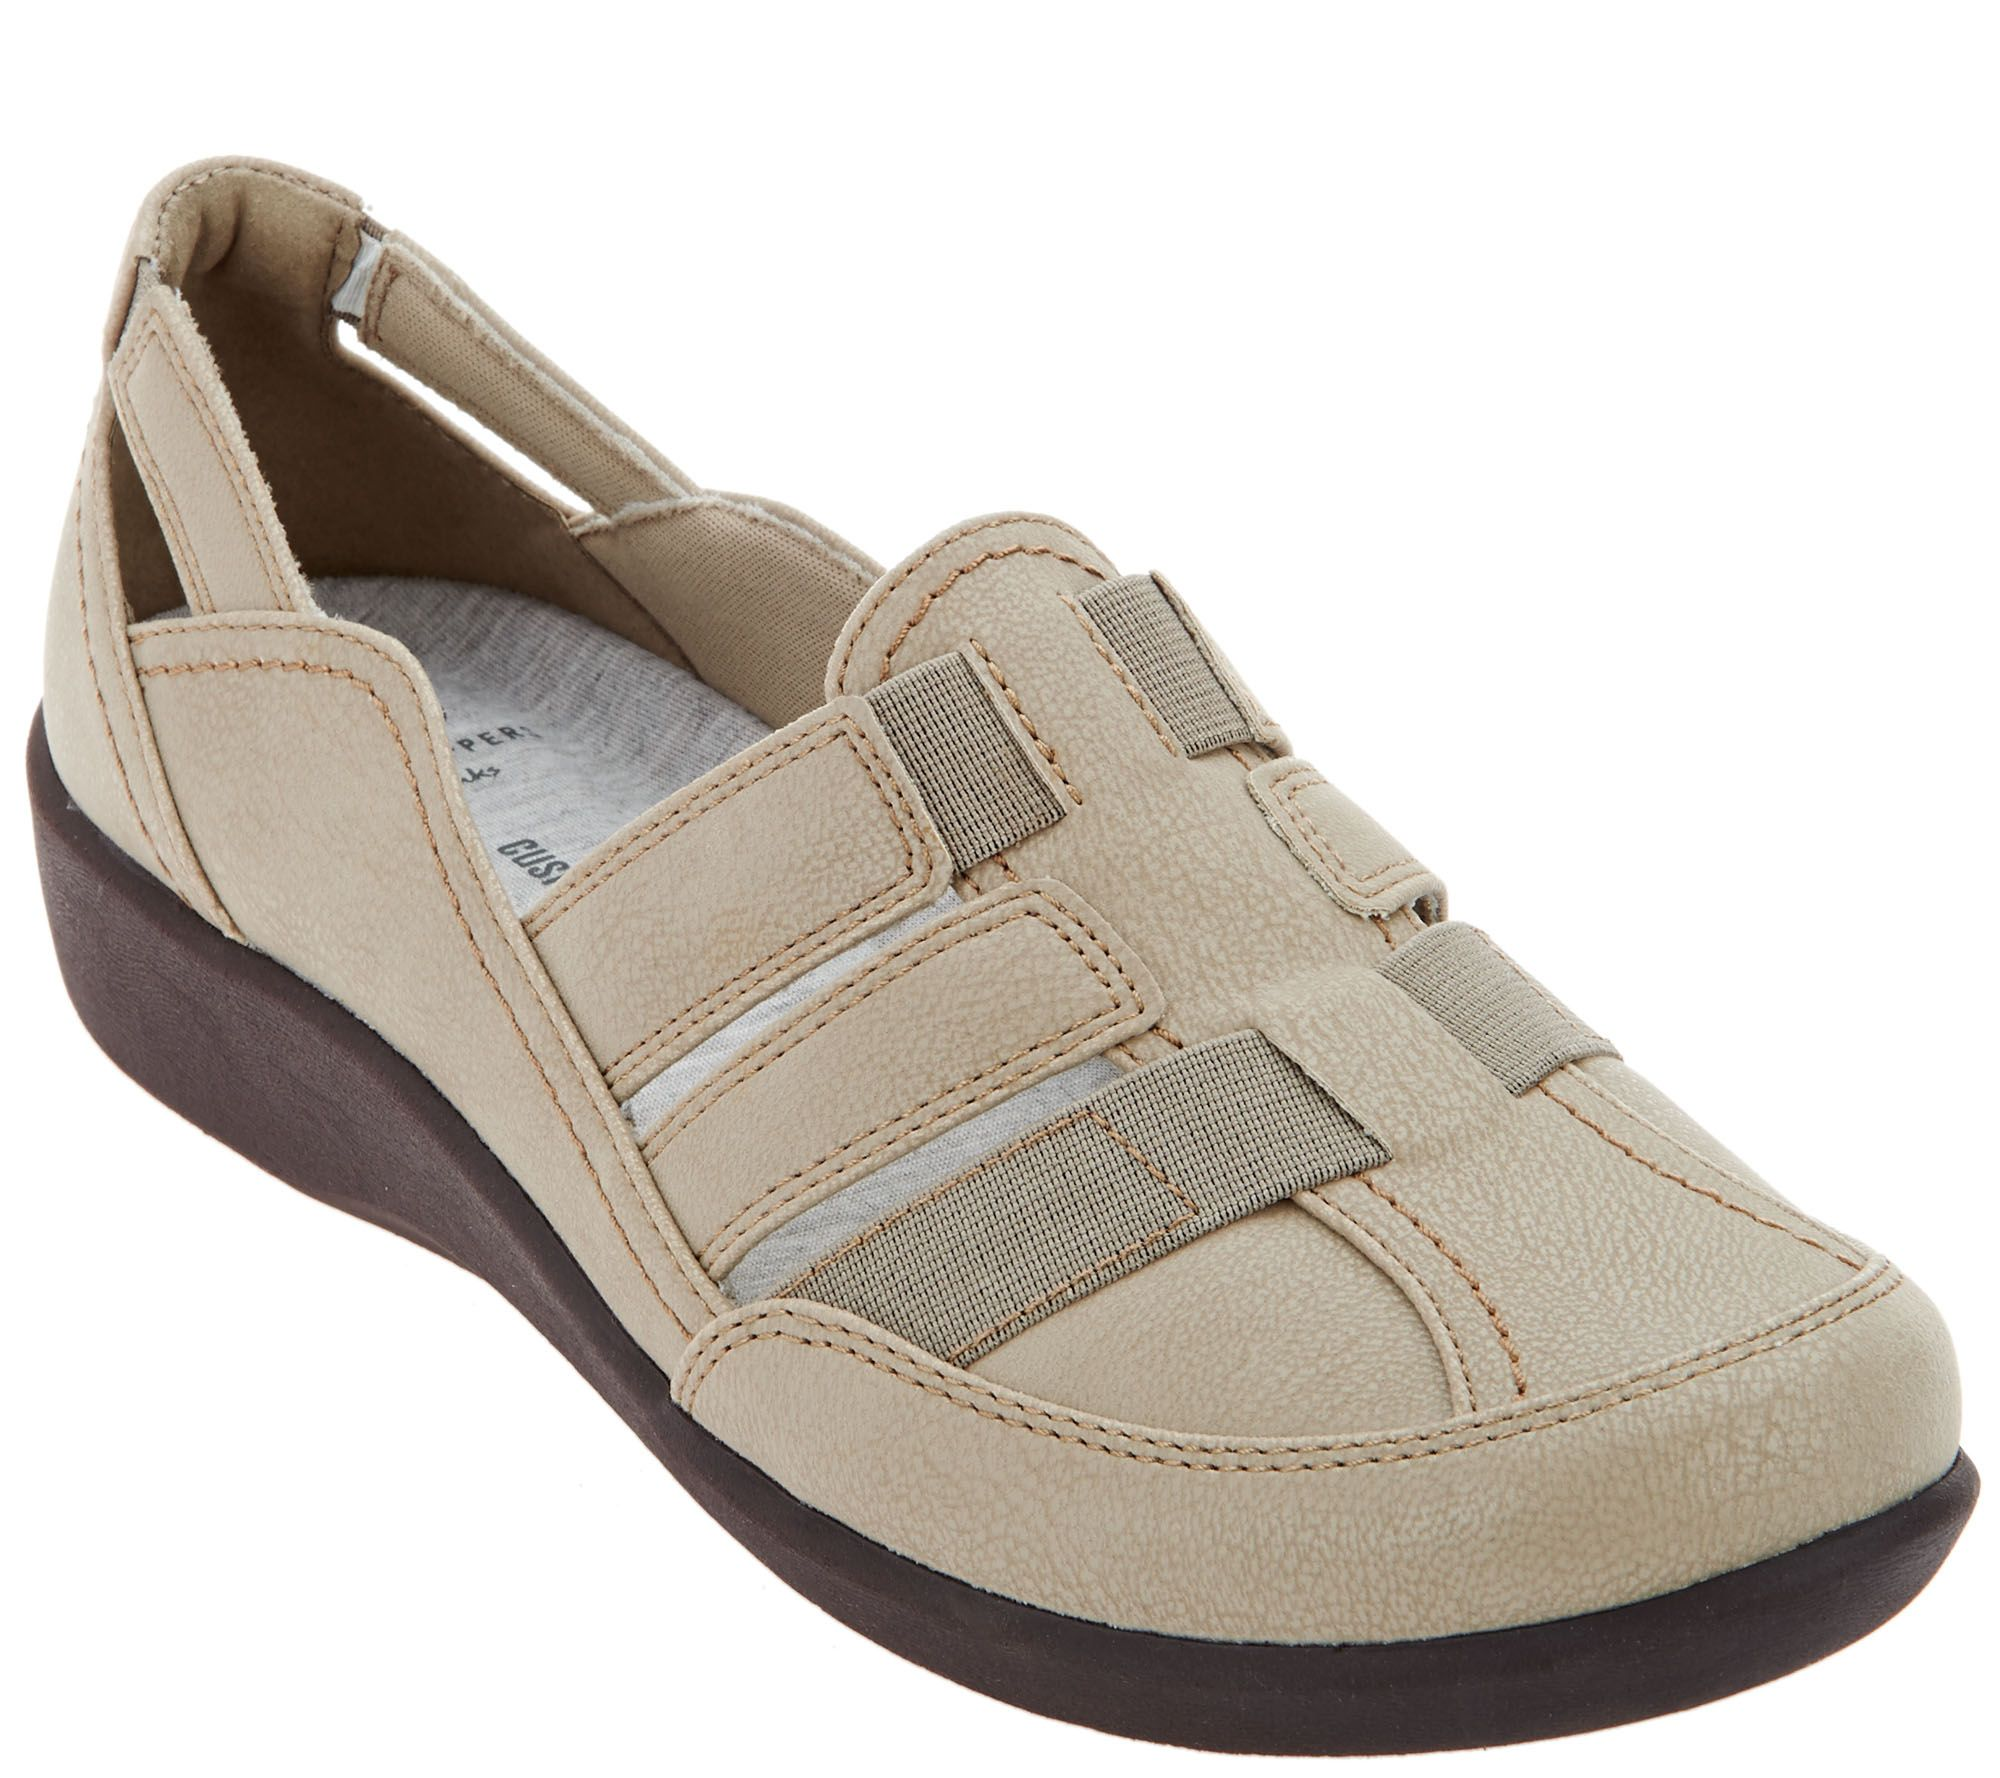 c58c40c9119e CLOUDSTEPPERS by Clarks Slip-on Shoes - Sillian Stork - Page 1 — QVC.com